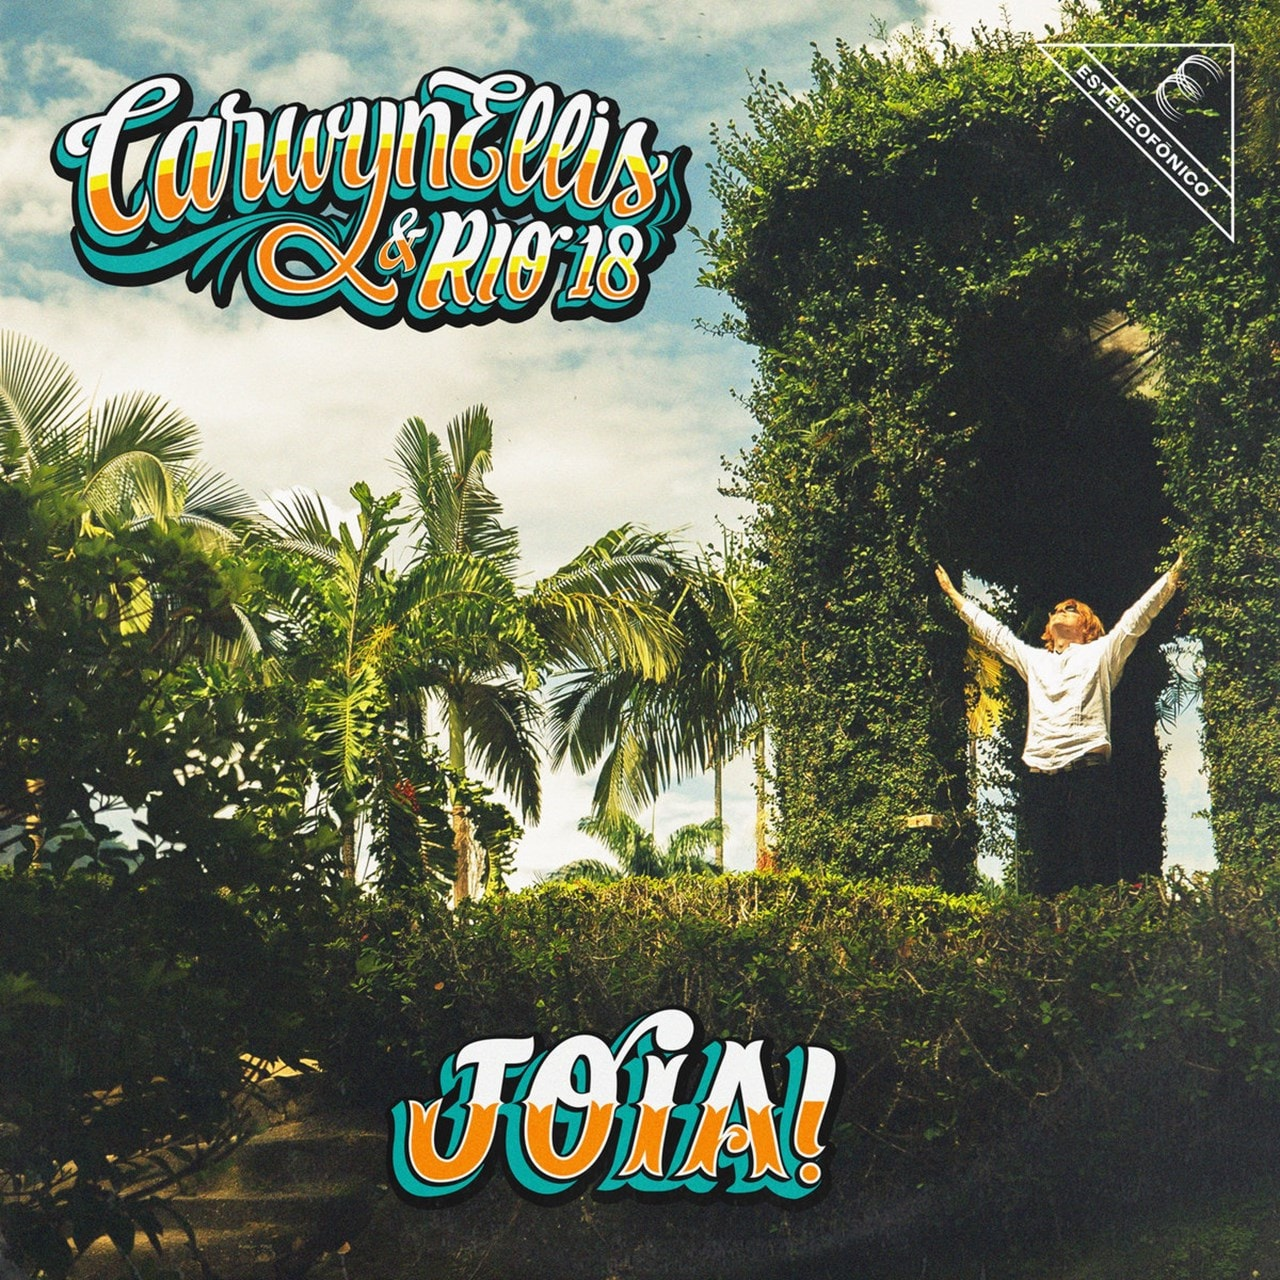 Joia! - 1